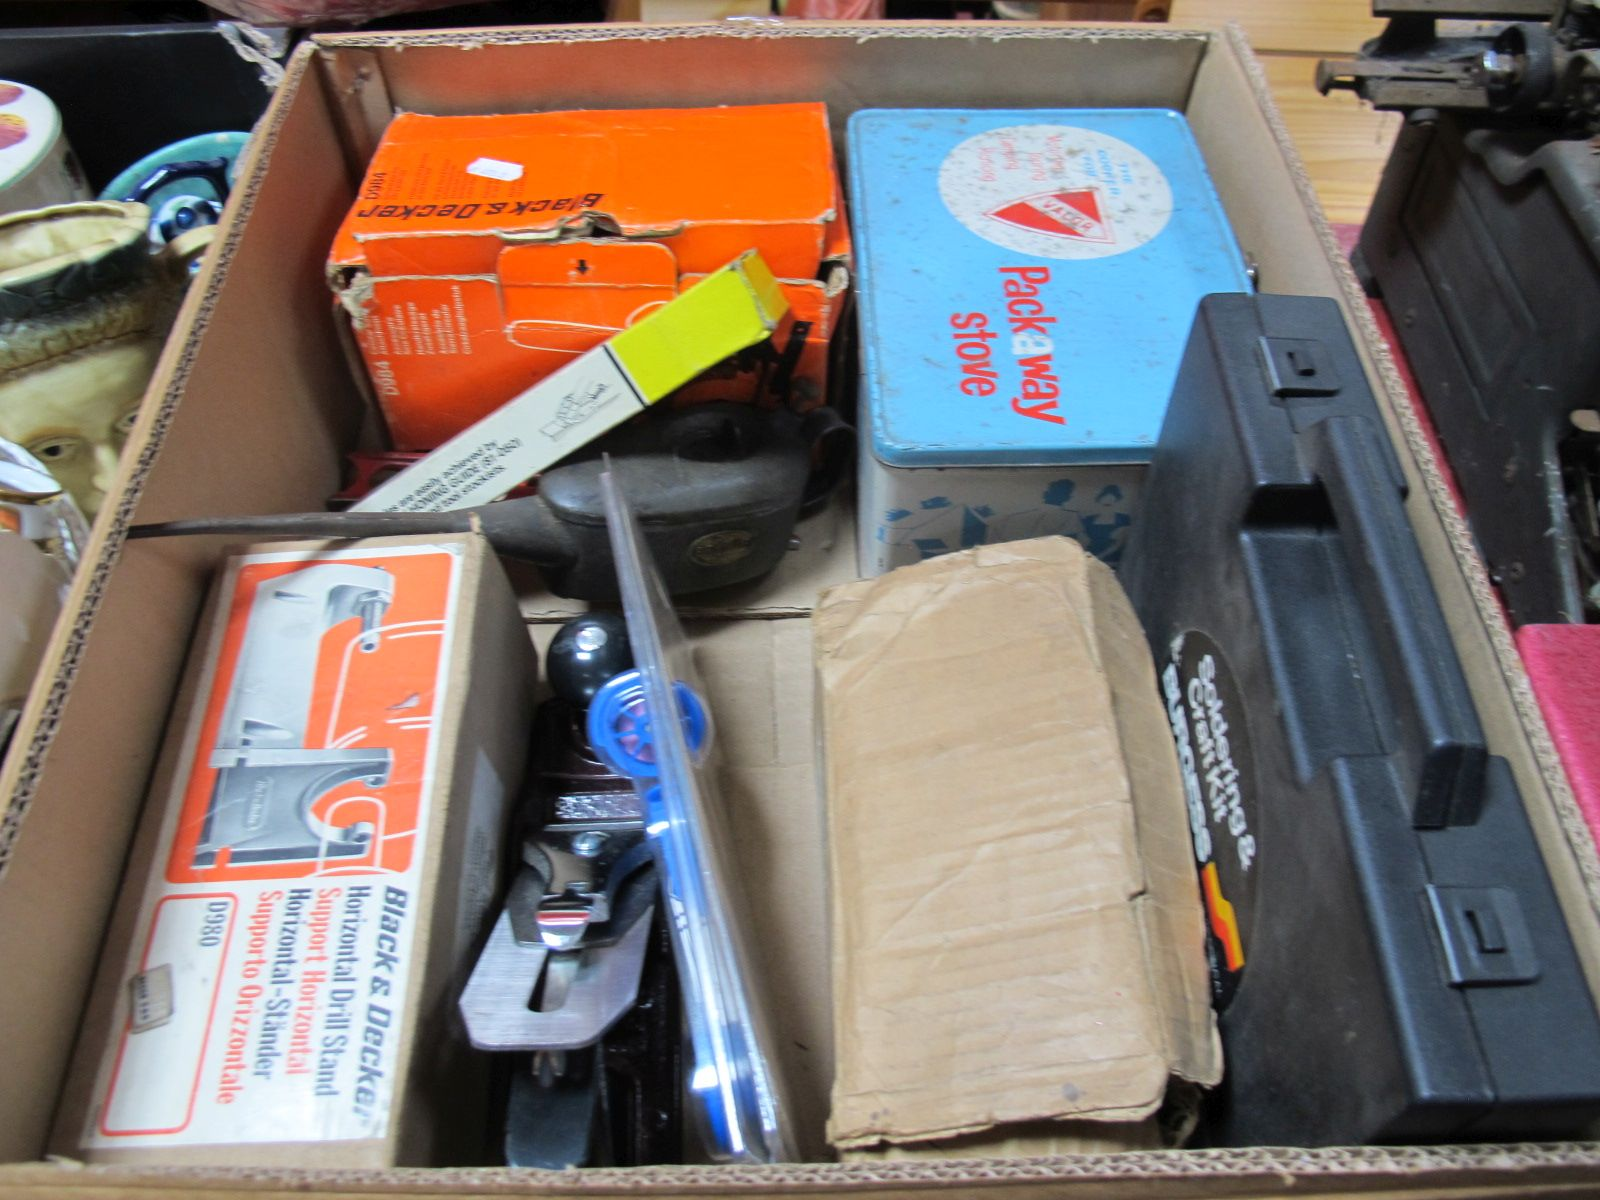 Lot 679 - A Soldering kit, oil stove, drill stand, Stanley plane, drill bit sharpener and other items:- One